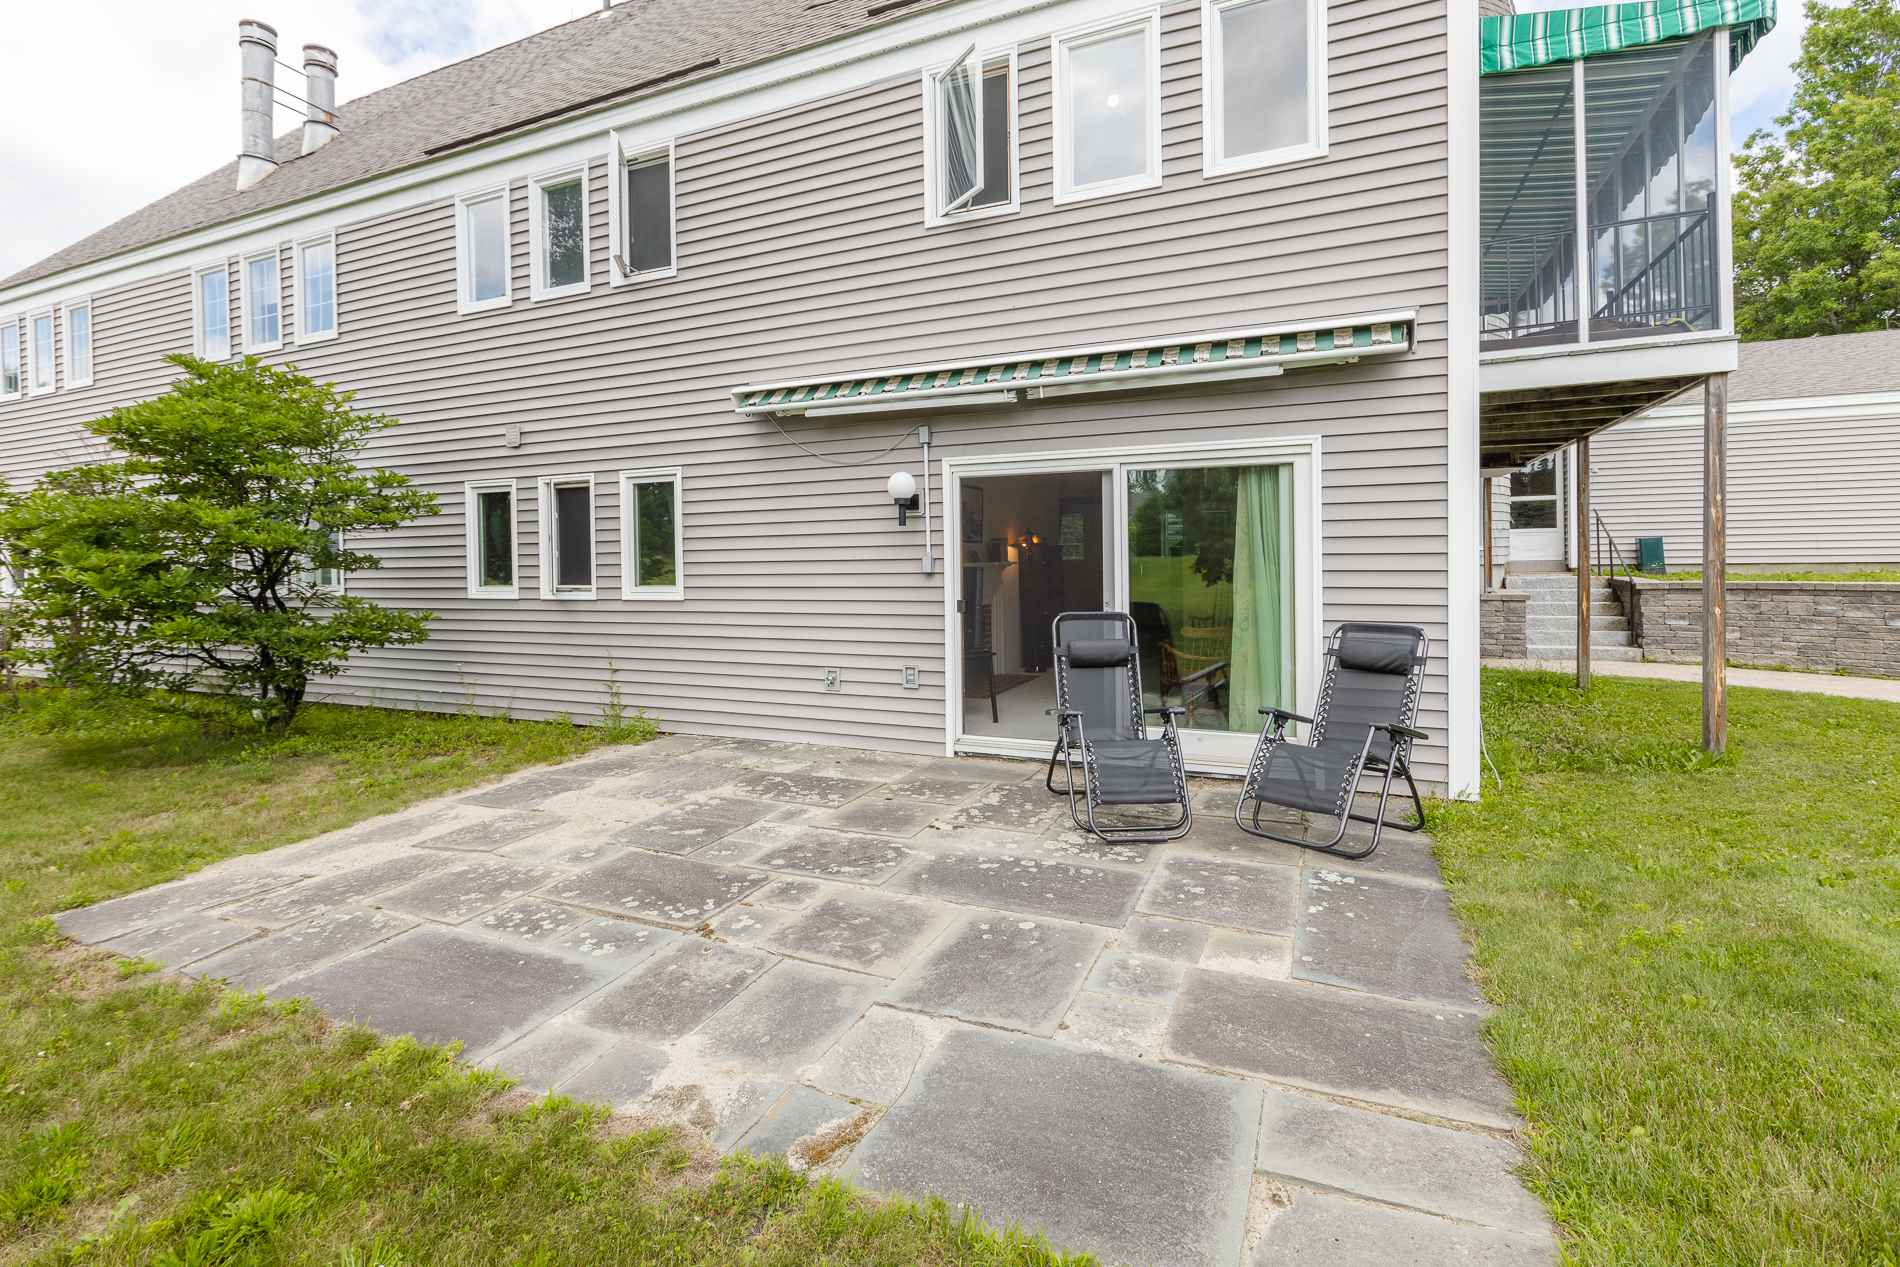 MLS 4817783: 44 Hilltop Place, New London NH